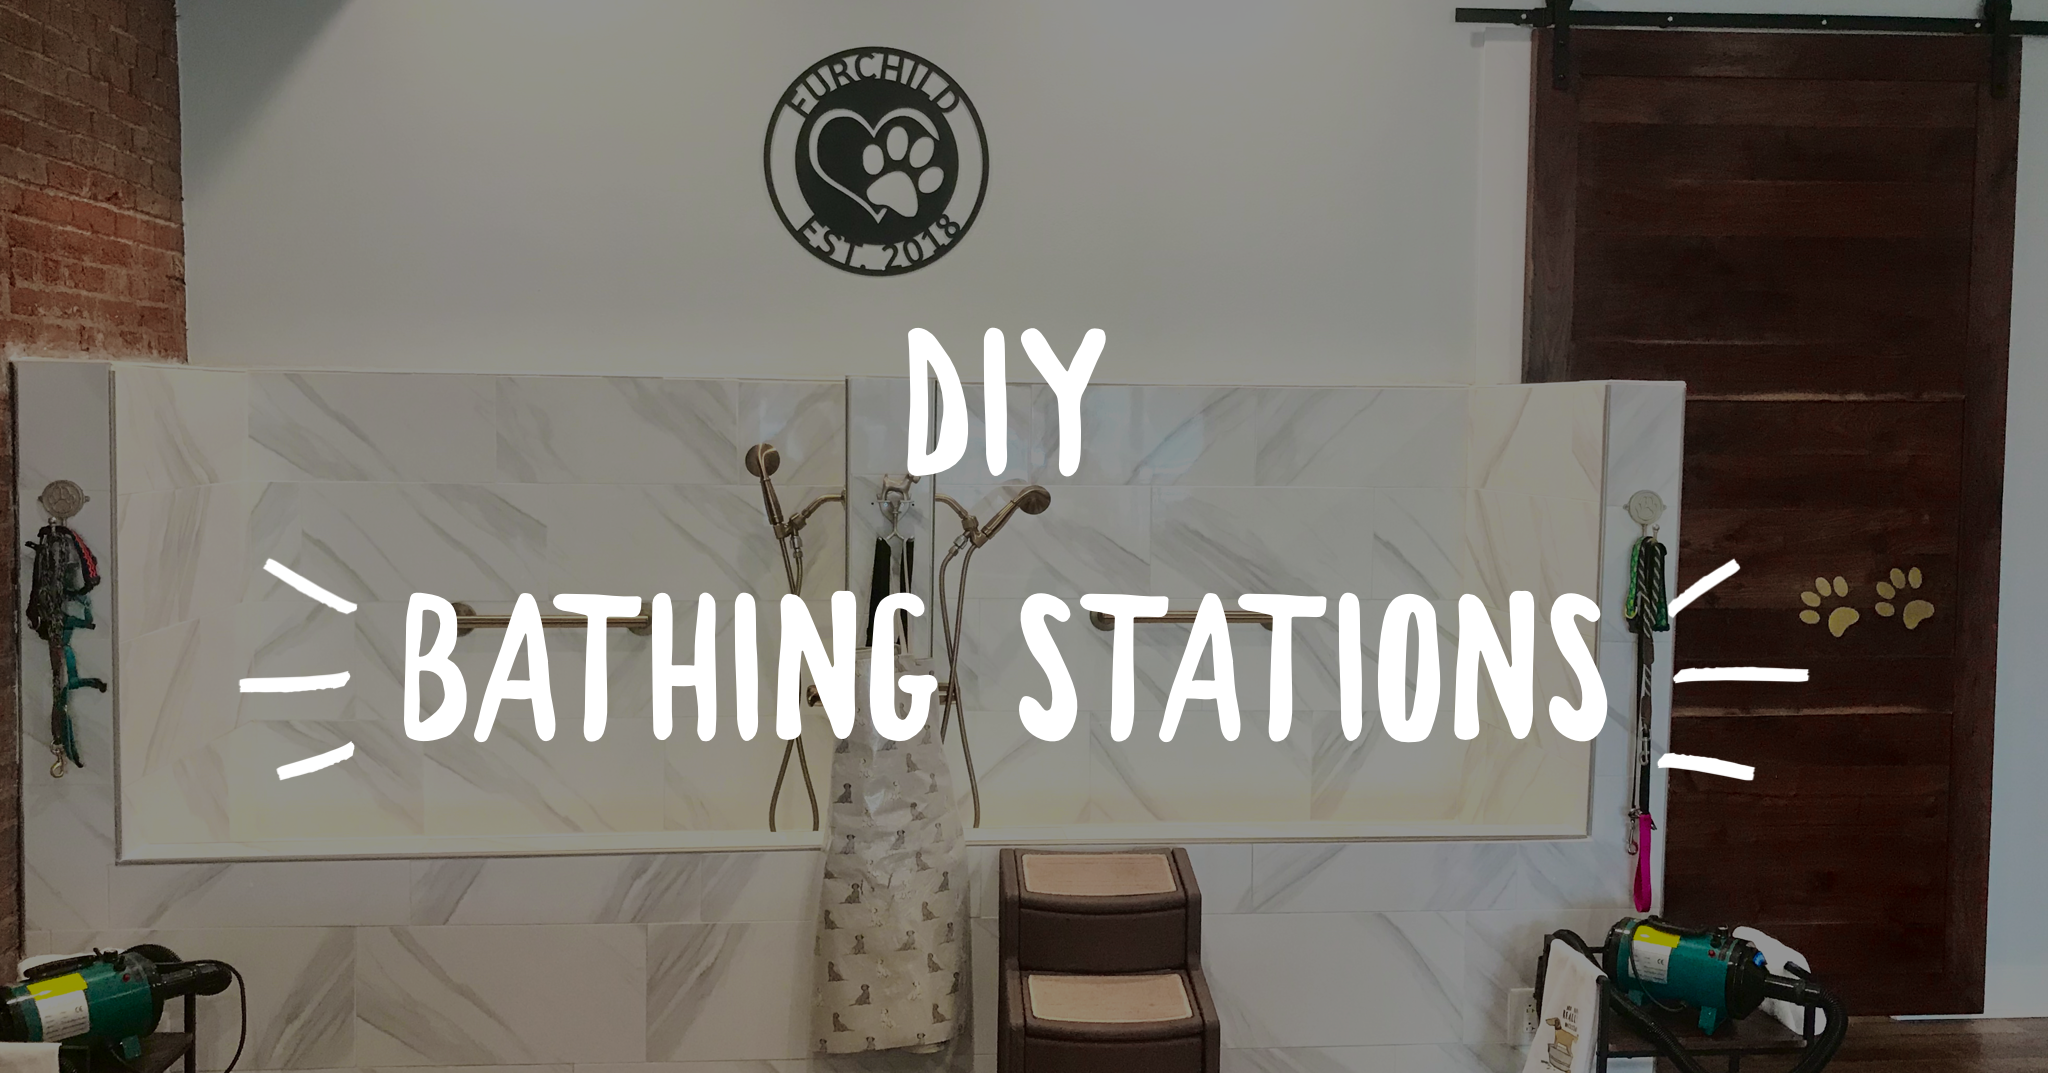 DIY Bathing Stations